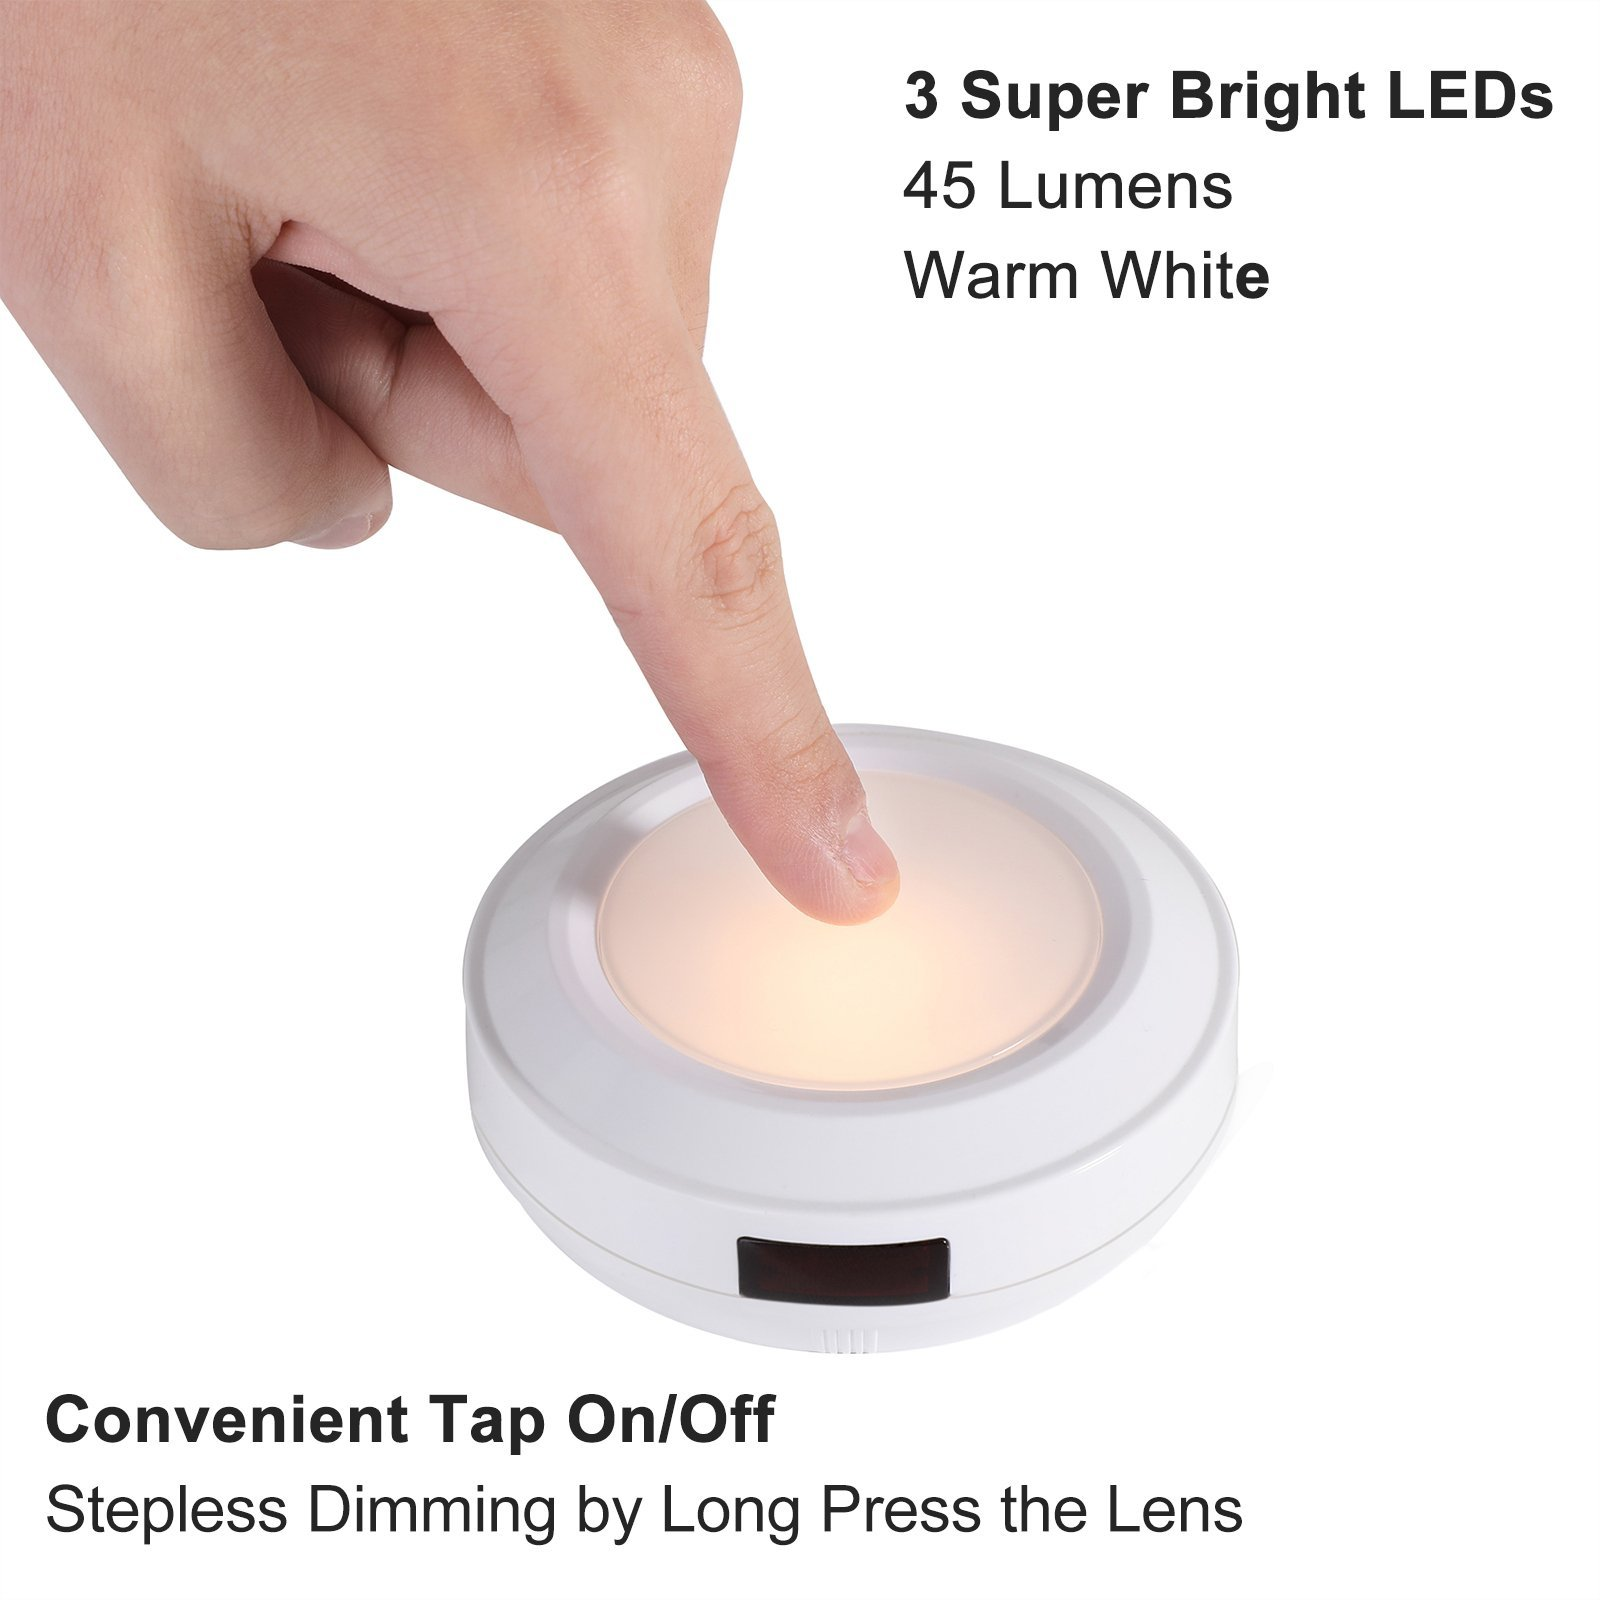 DEWENWILS LED Puck Light with Remote Control (Timer+ Dimmer) Power Failure Battery Operated Emergency Nightlight, Stick-on Anywhere for Hallway, Bathroom, Bedroom, Warm White, Pack of 4 by DEWENWILS (Image #2)